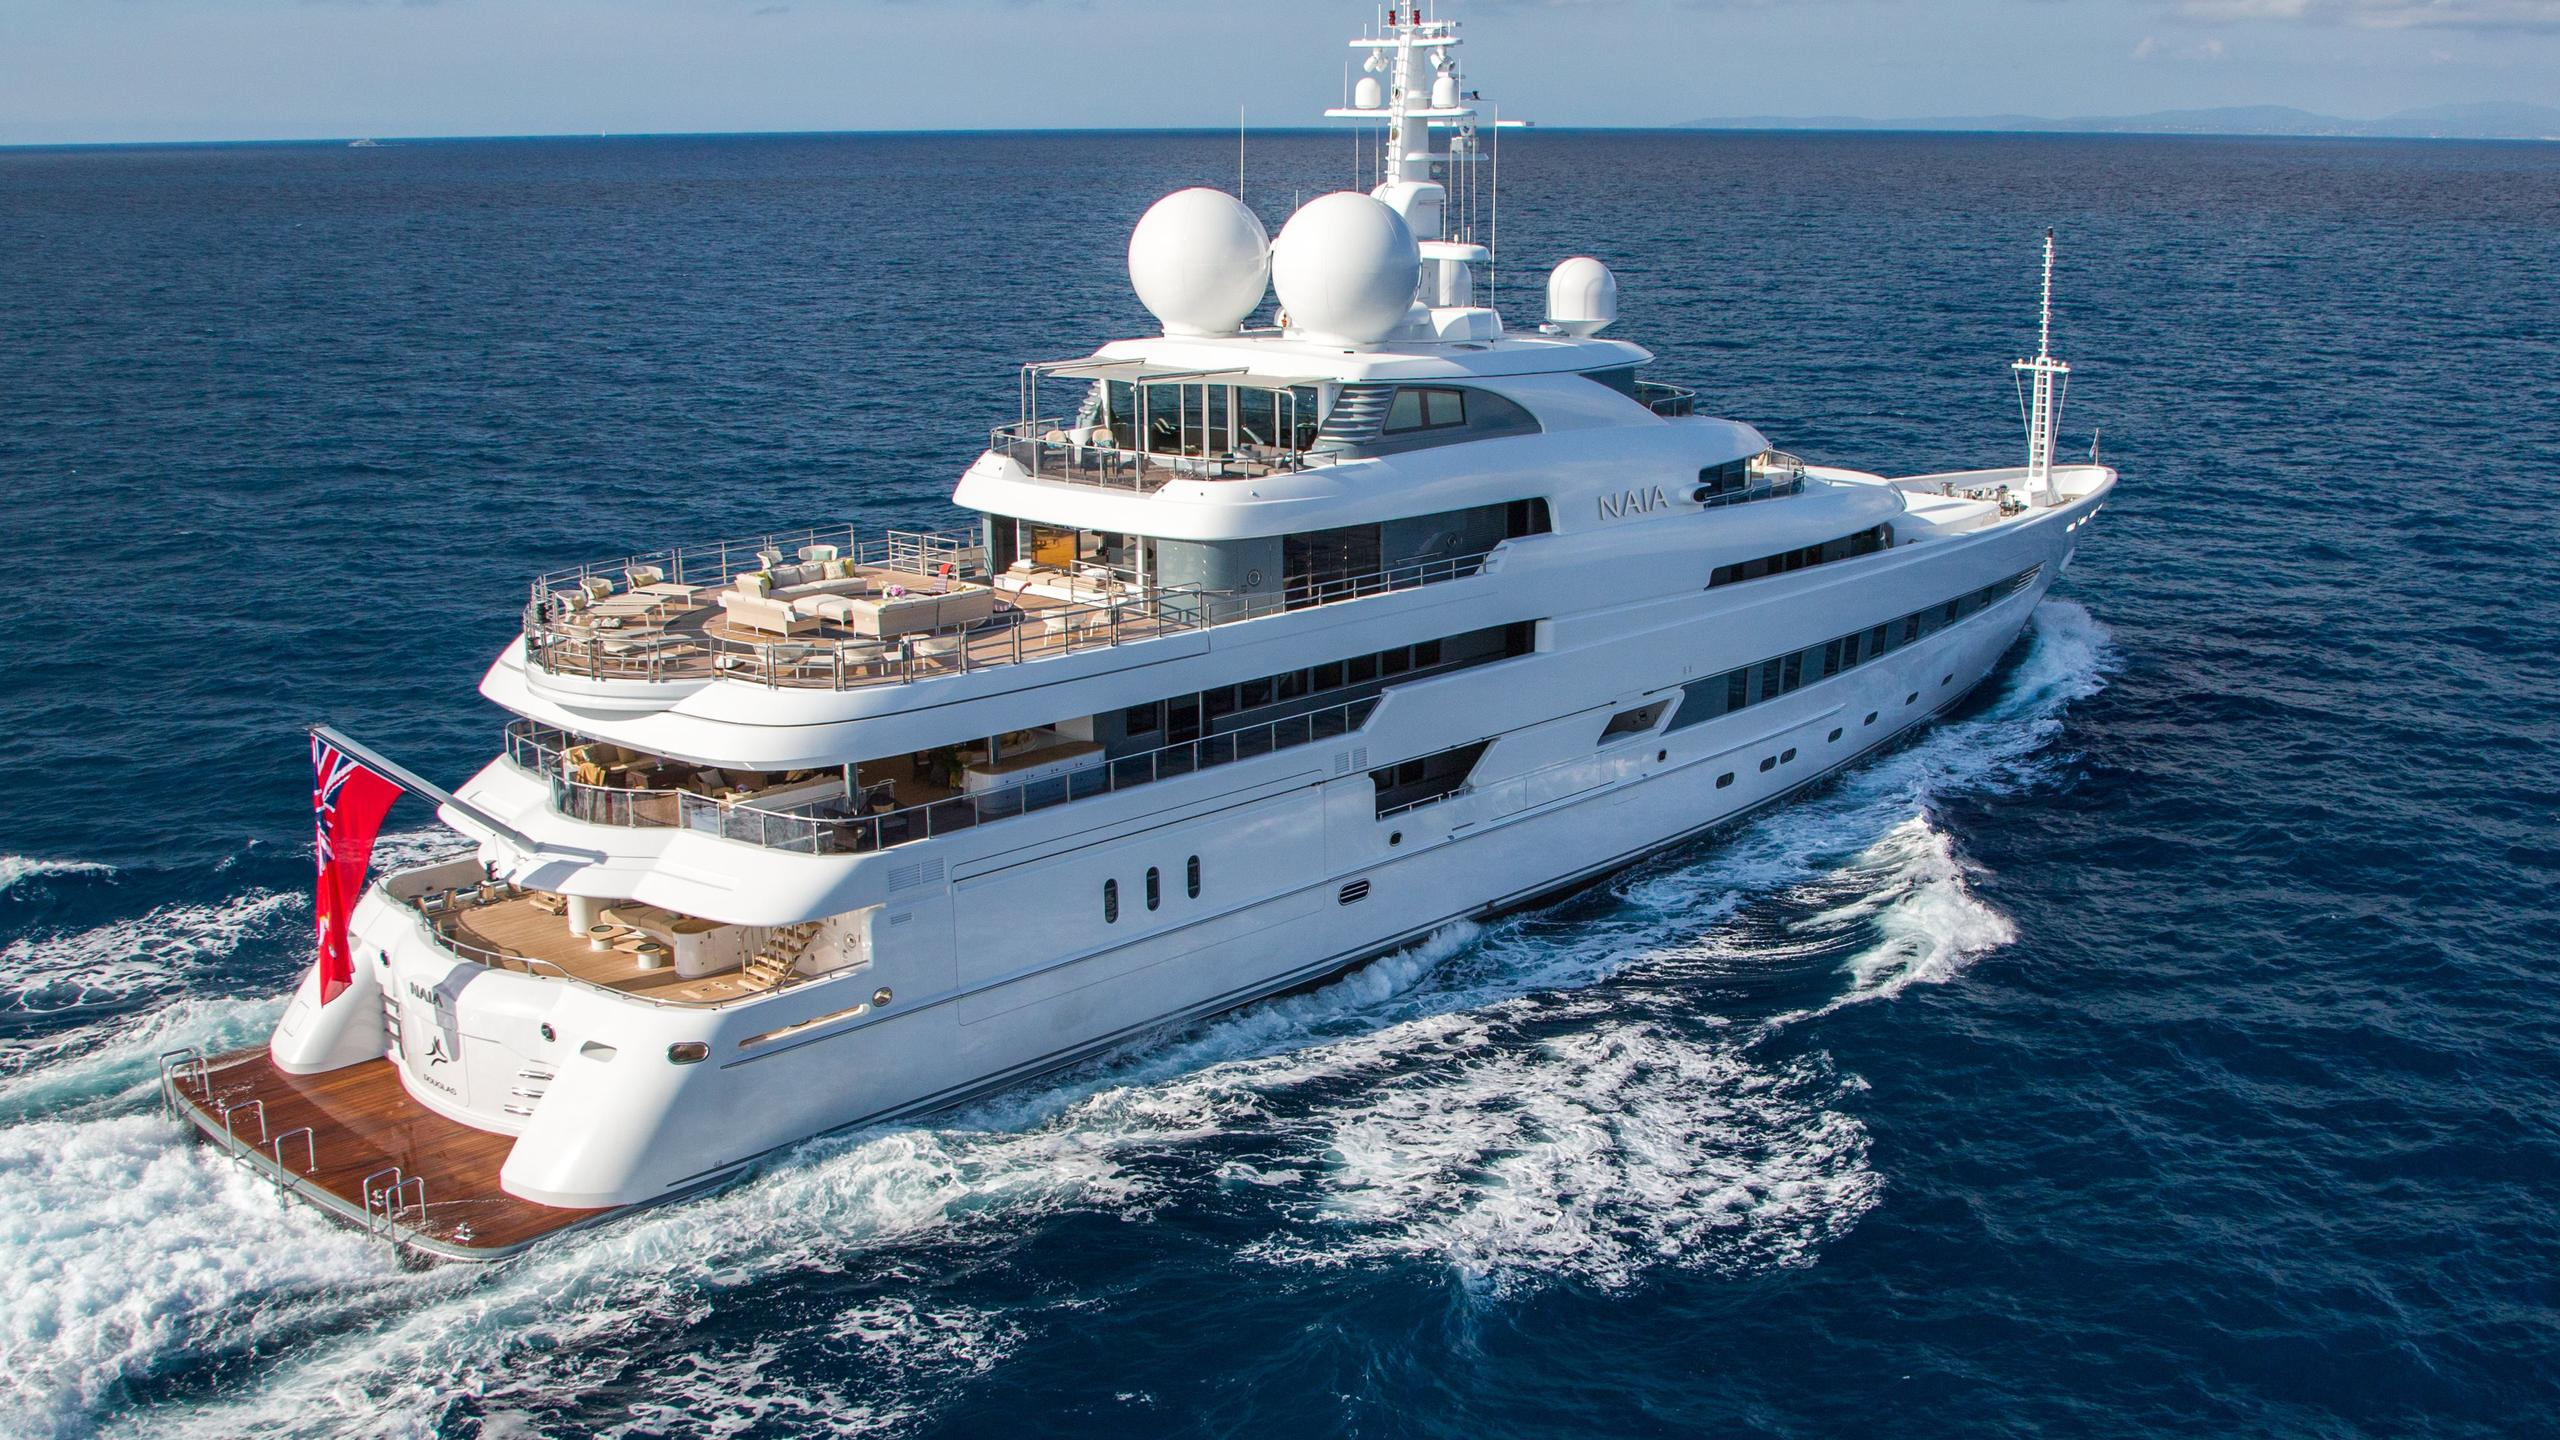 naia-yacht-for-charter-profile